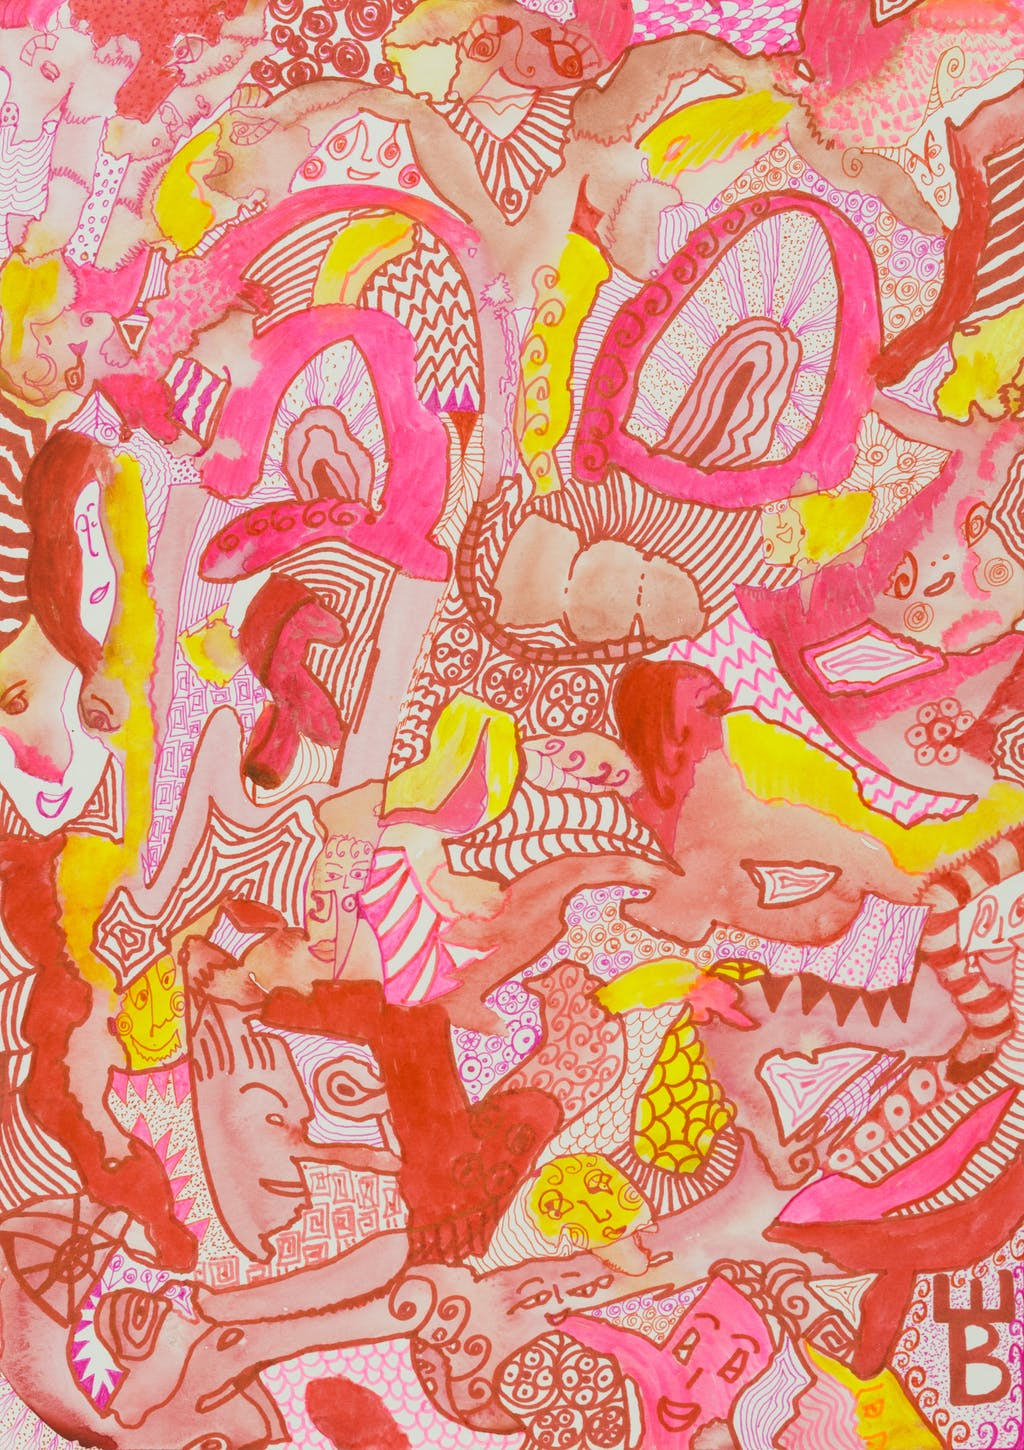 """Painting """"In pink"""", painted by Elena Birkenwald in 2020"""